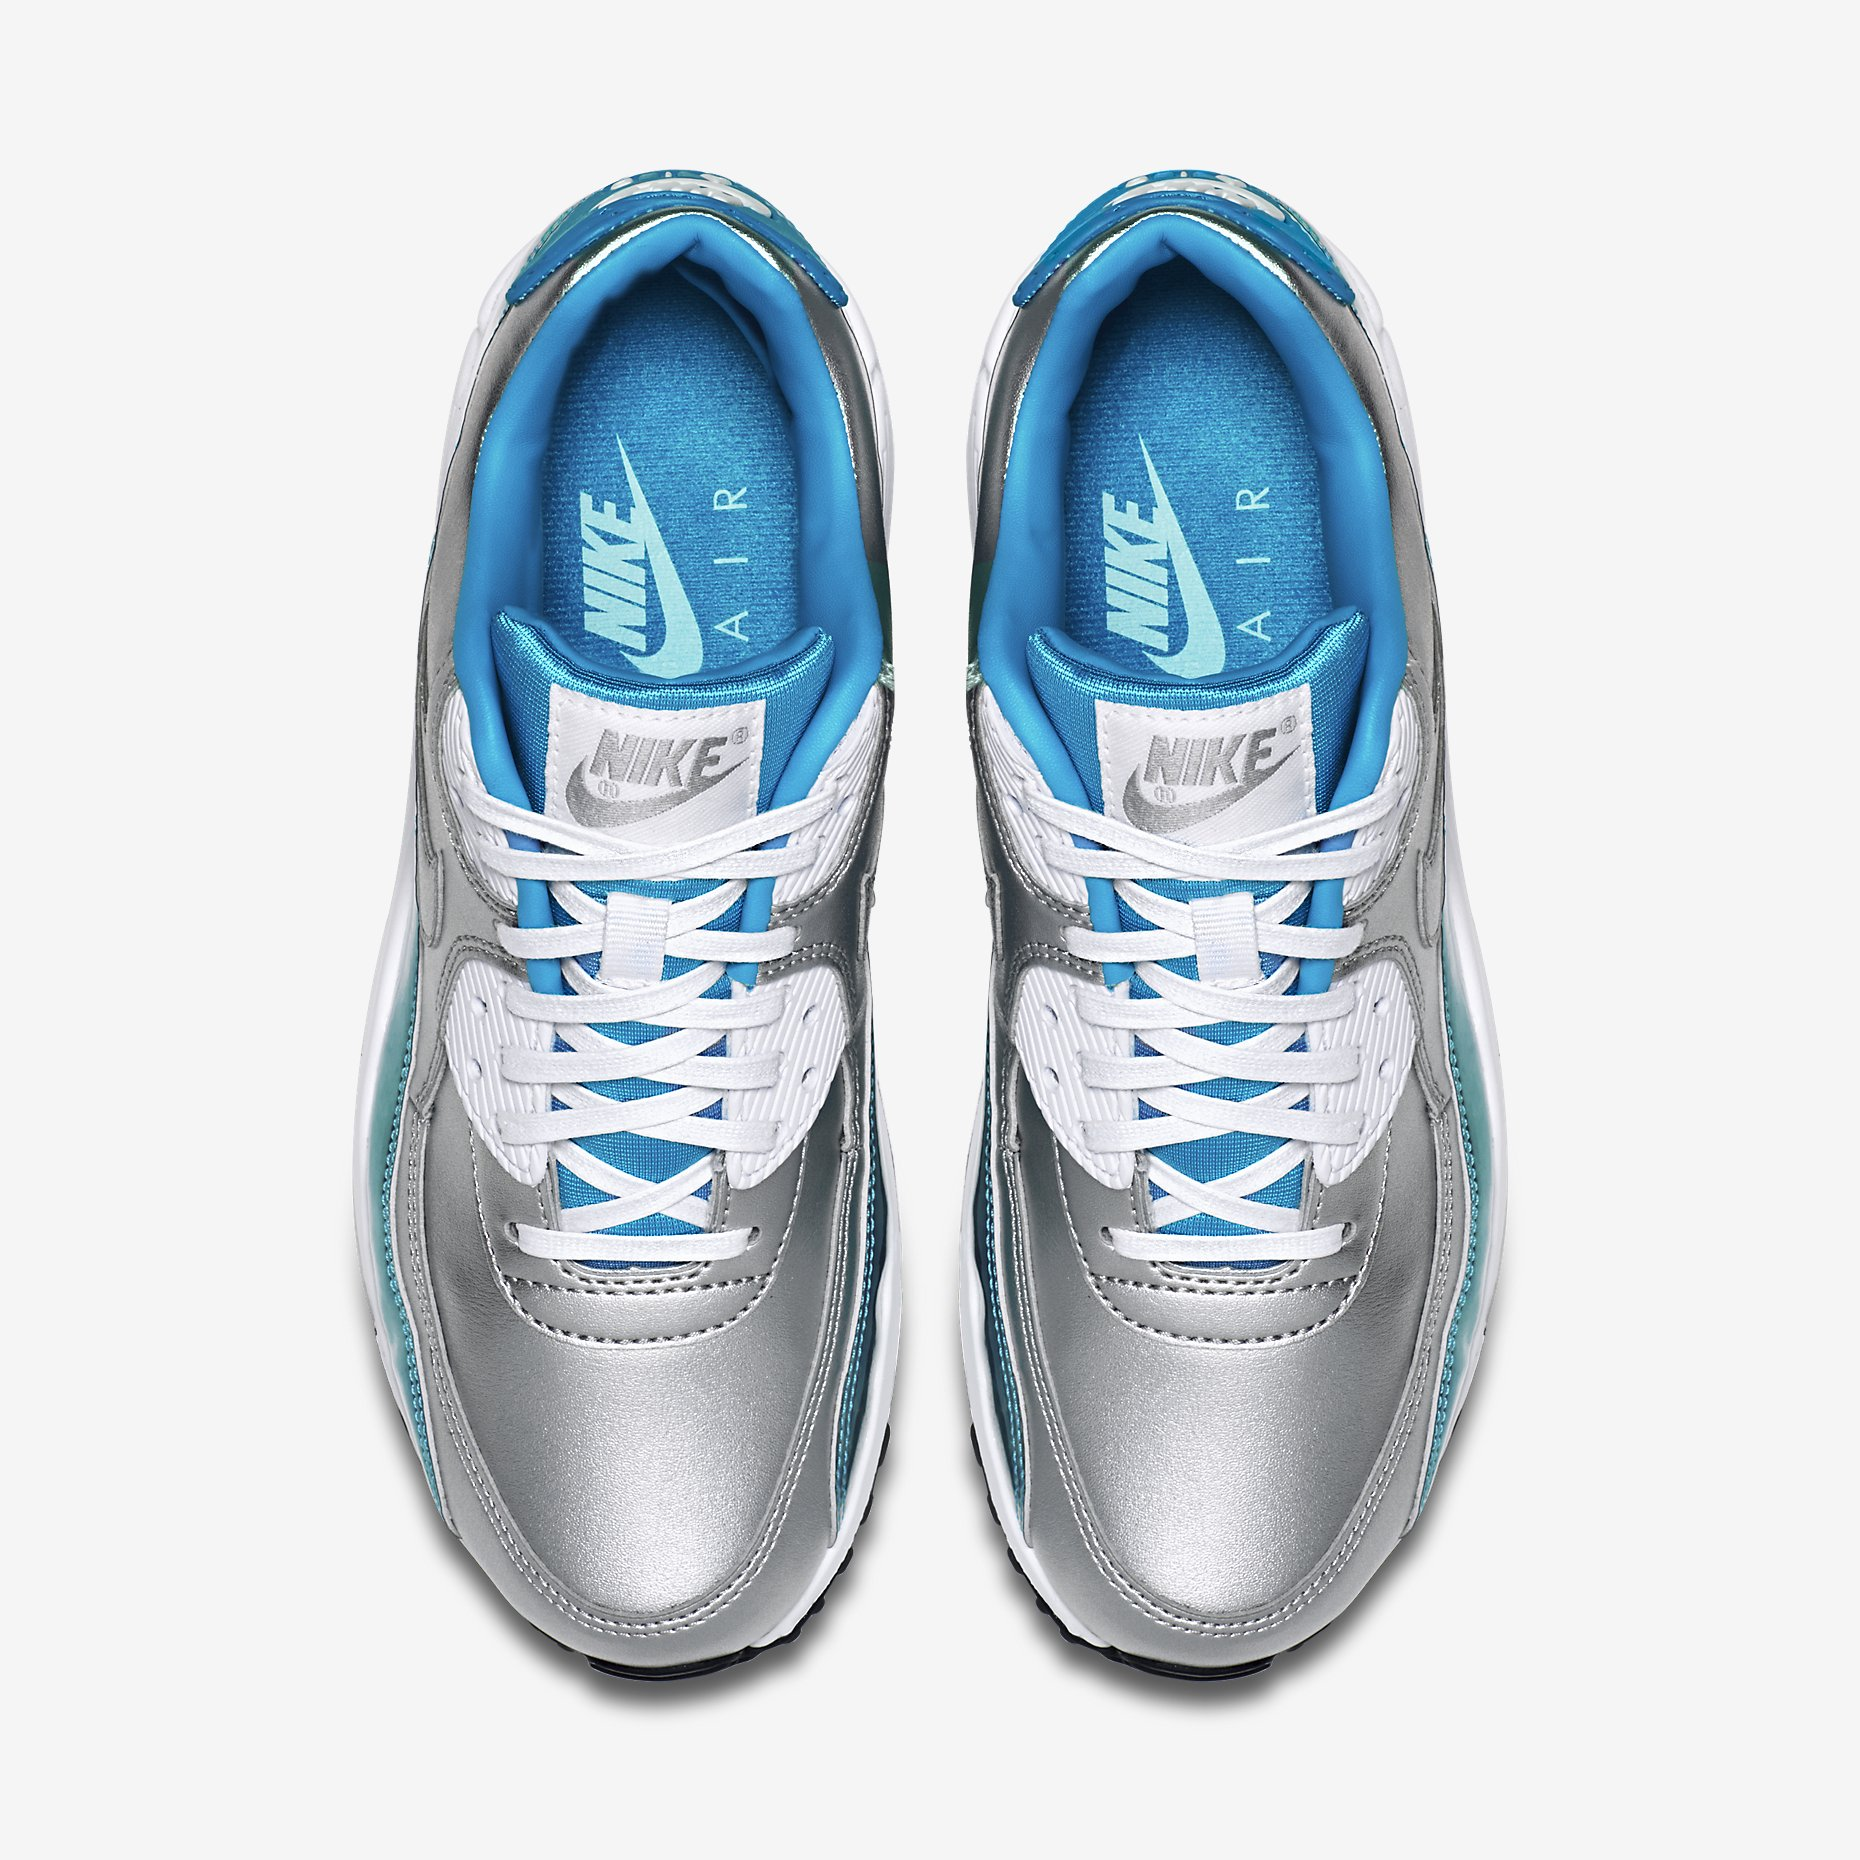 new arrivals 03ff8 10eac nike air max 90 PRM QS womens running trainers 744596 002 sneakers CLEARANCE